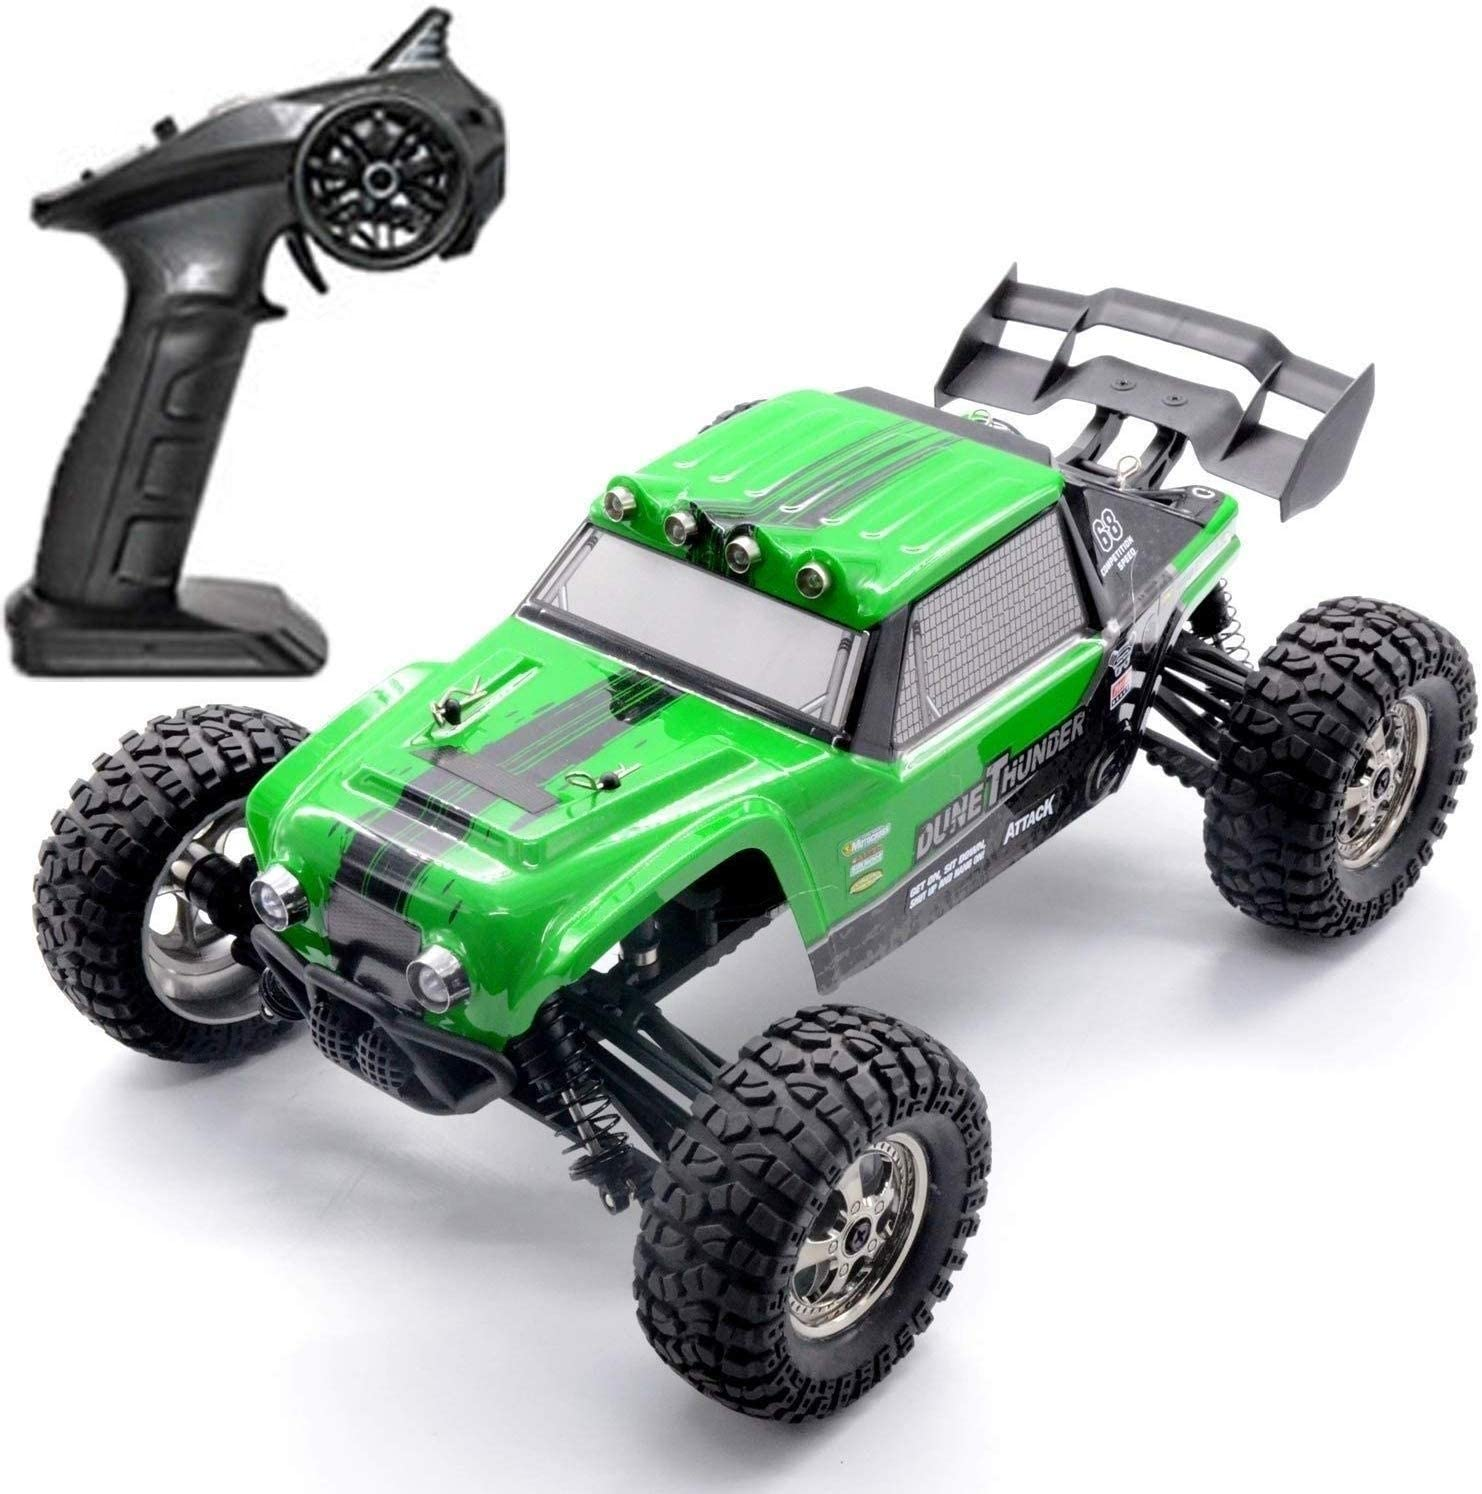 Xuess RC High Speed Car 4WD Remote Control Rook All Terrain Climbing Car,1:12 Scale High Speed RC Car Off-Road Electric Racing Vehicle, Birthday Collection Gift